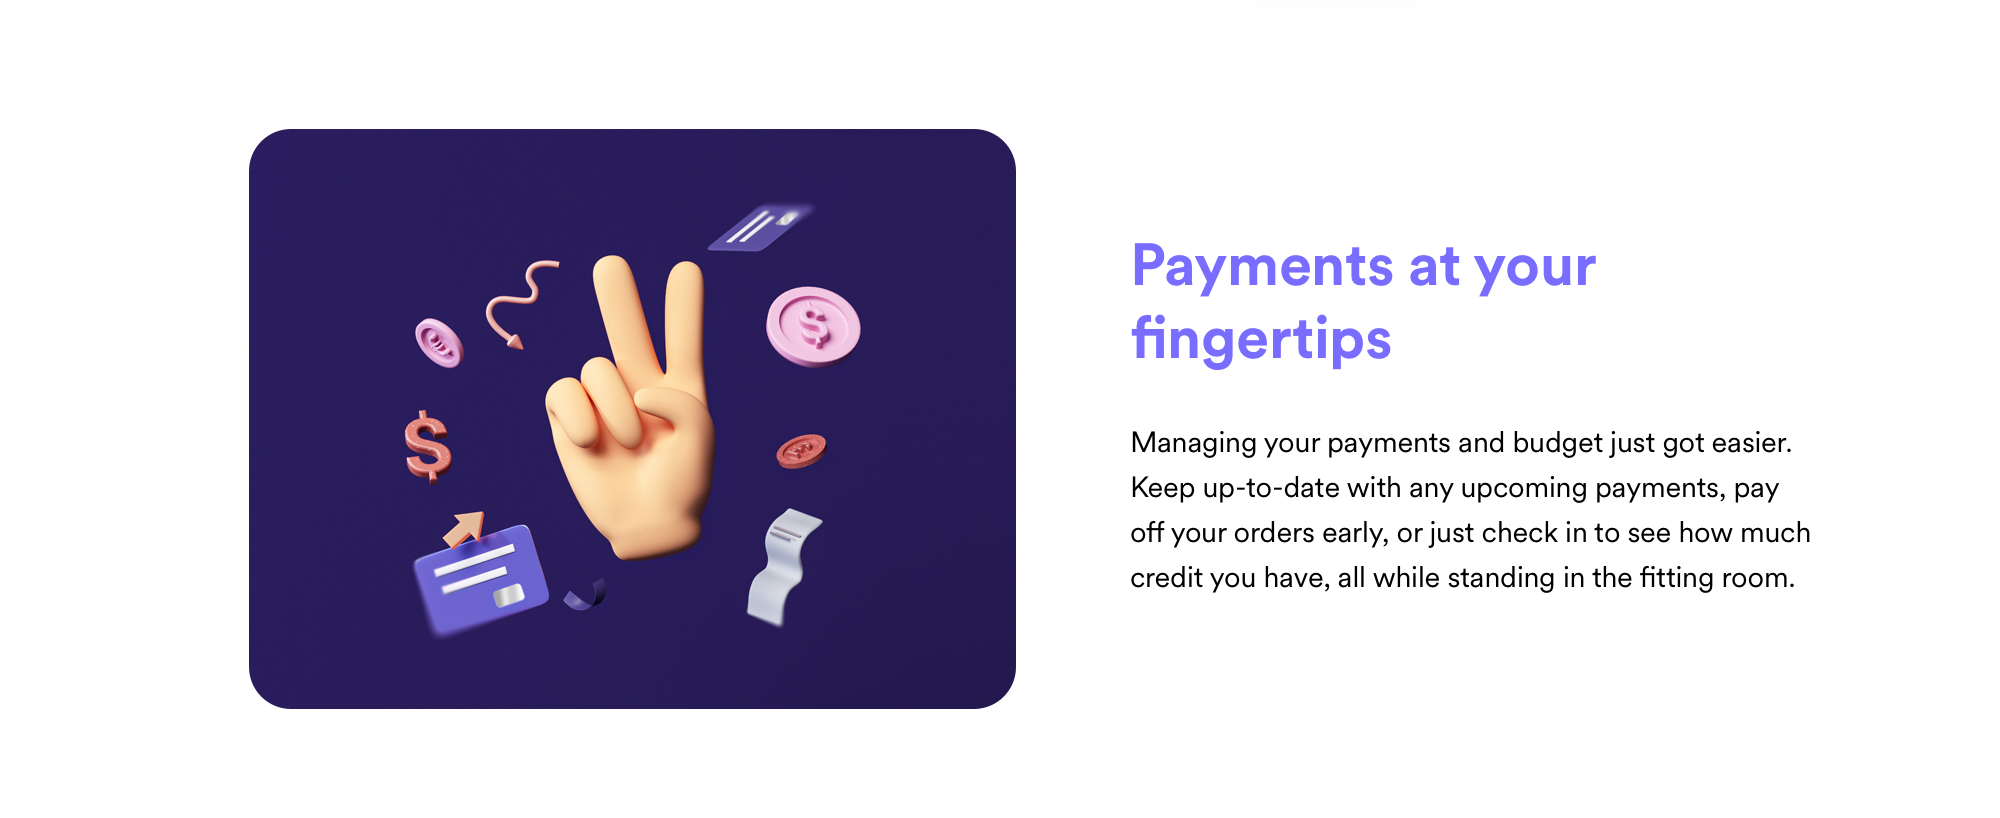 Payments are your fingertips